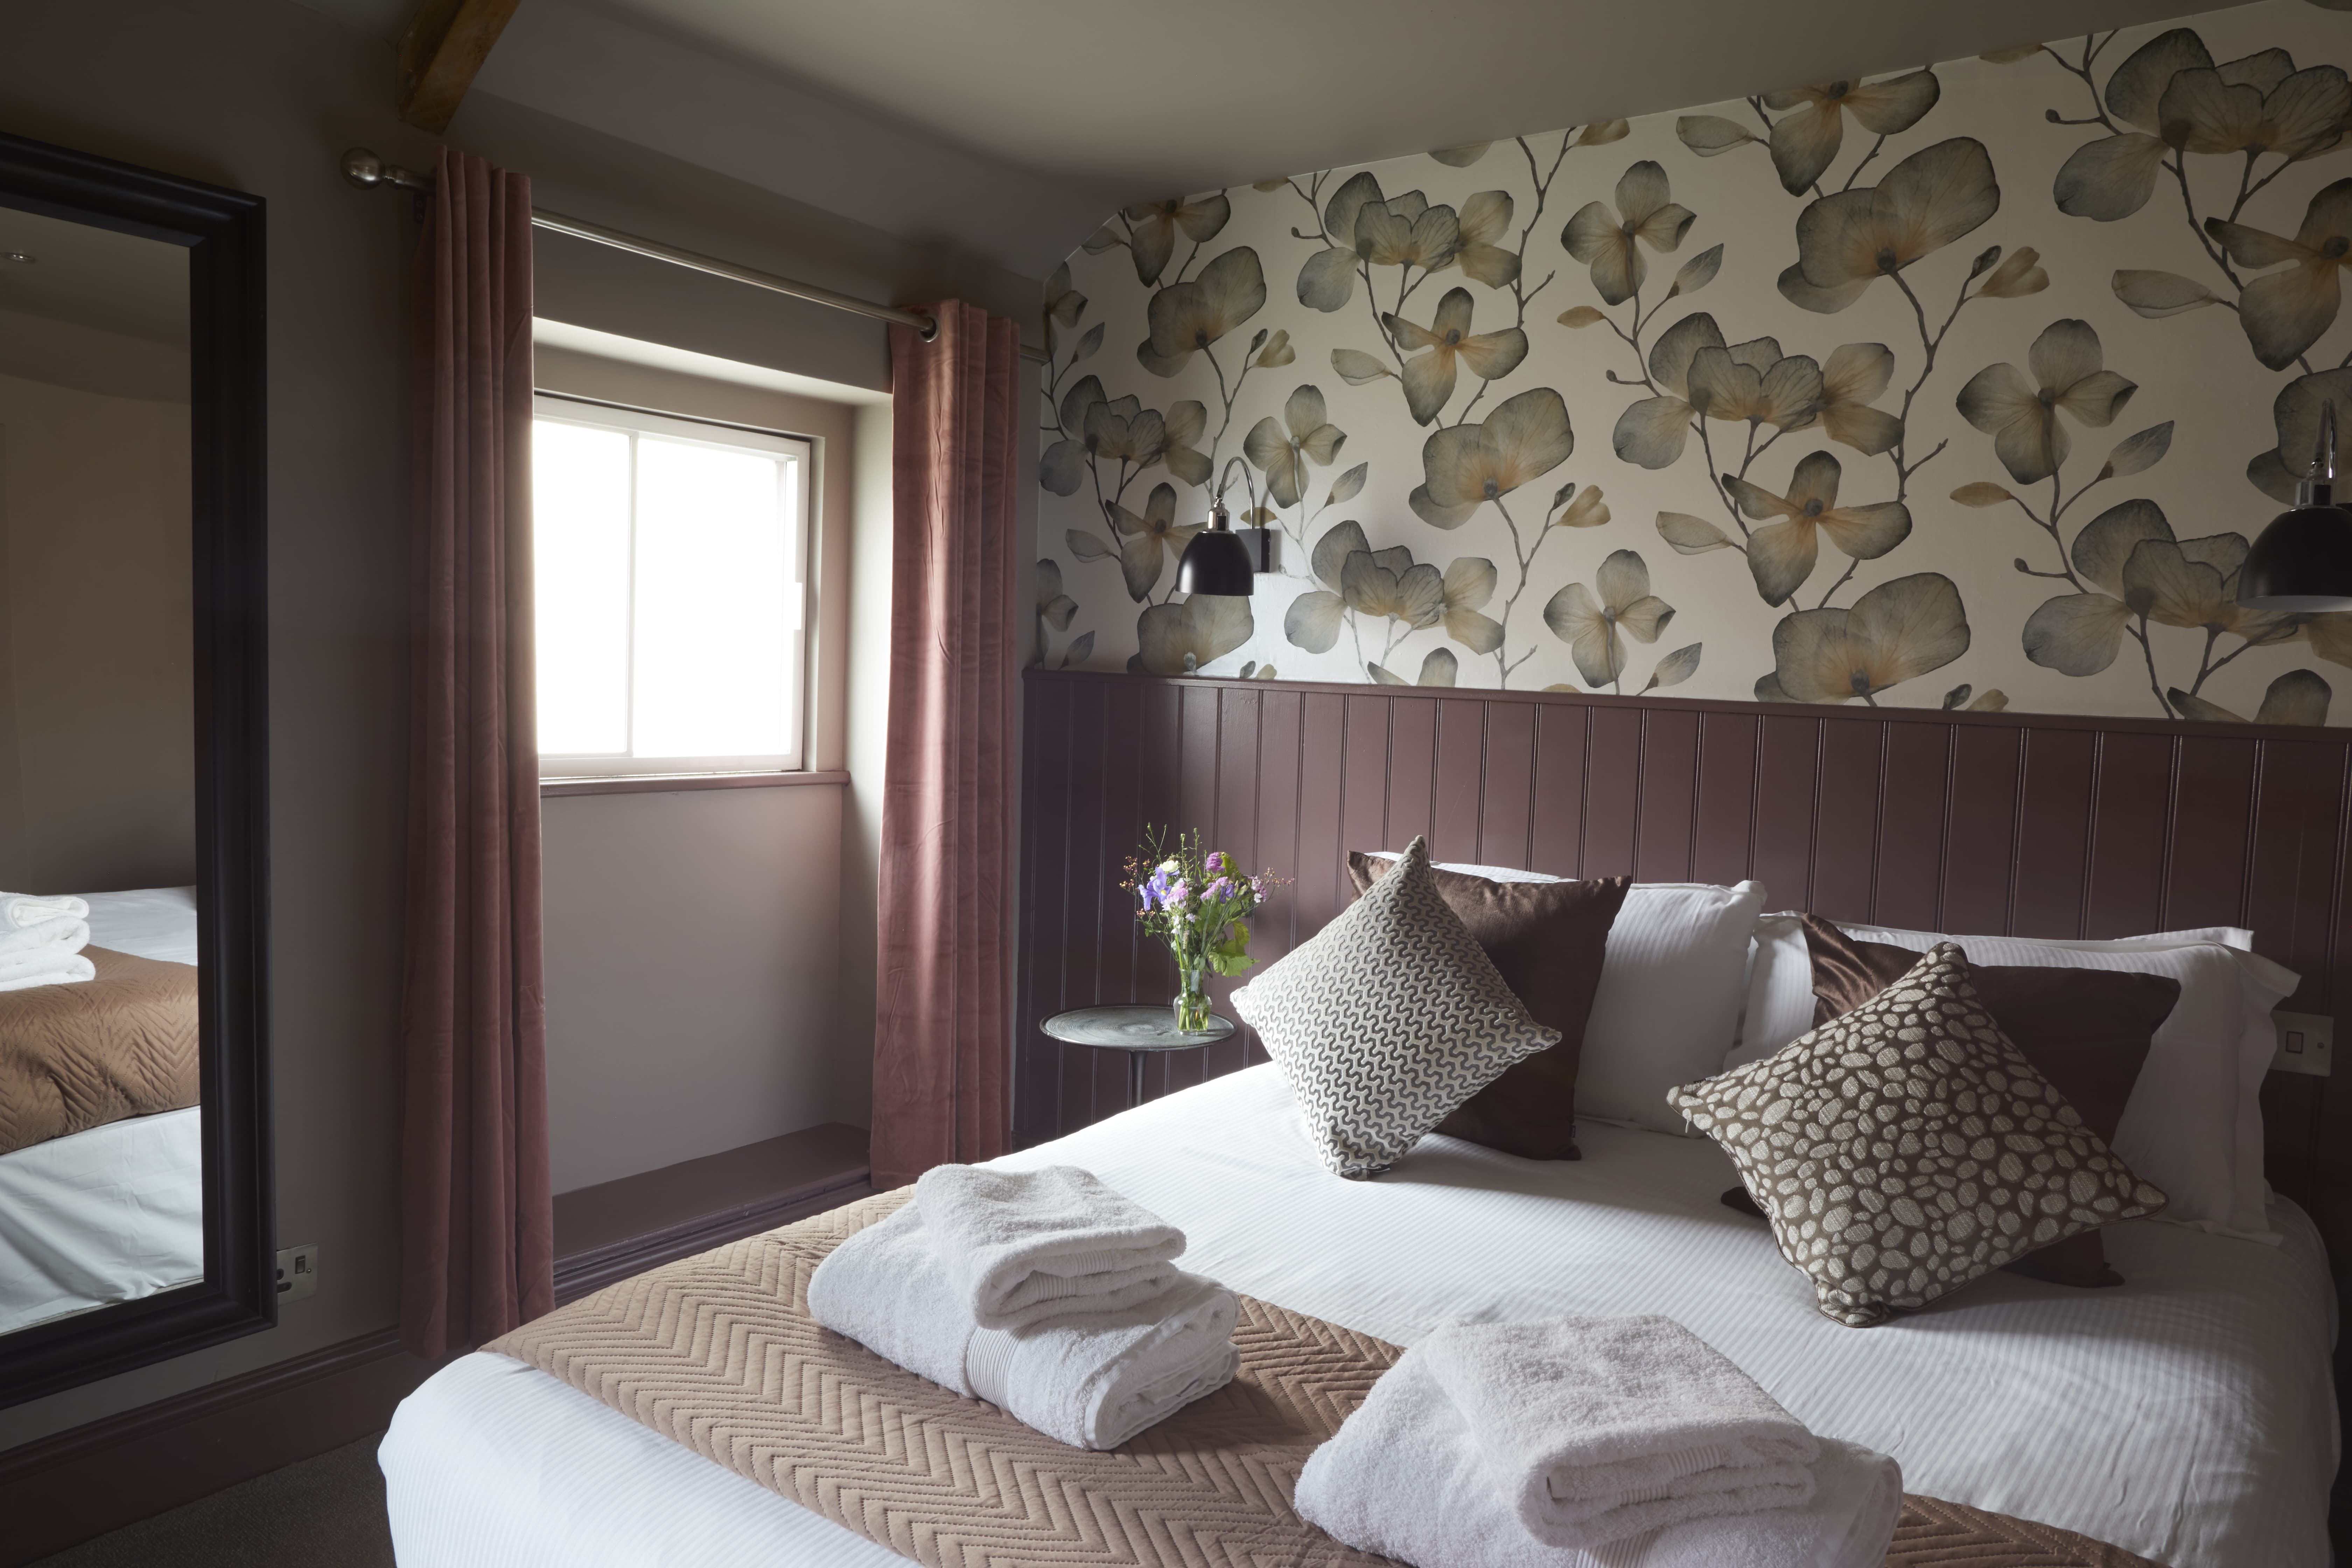 double bedroom with decorative cushions, fresh flowers, fresh towels and floral wallpaper at The Archangel, pub and cocktail bar with bedrooms in Frome, Somerset